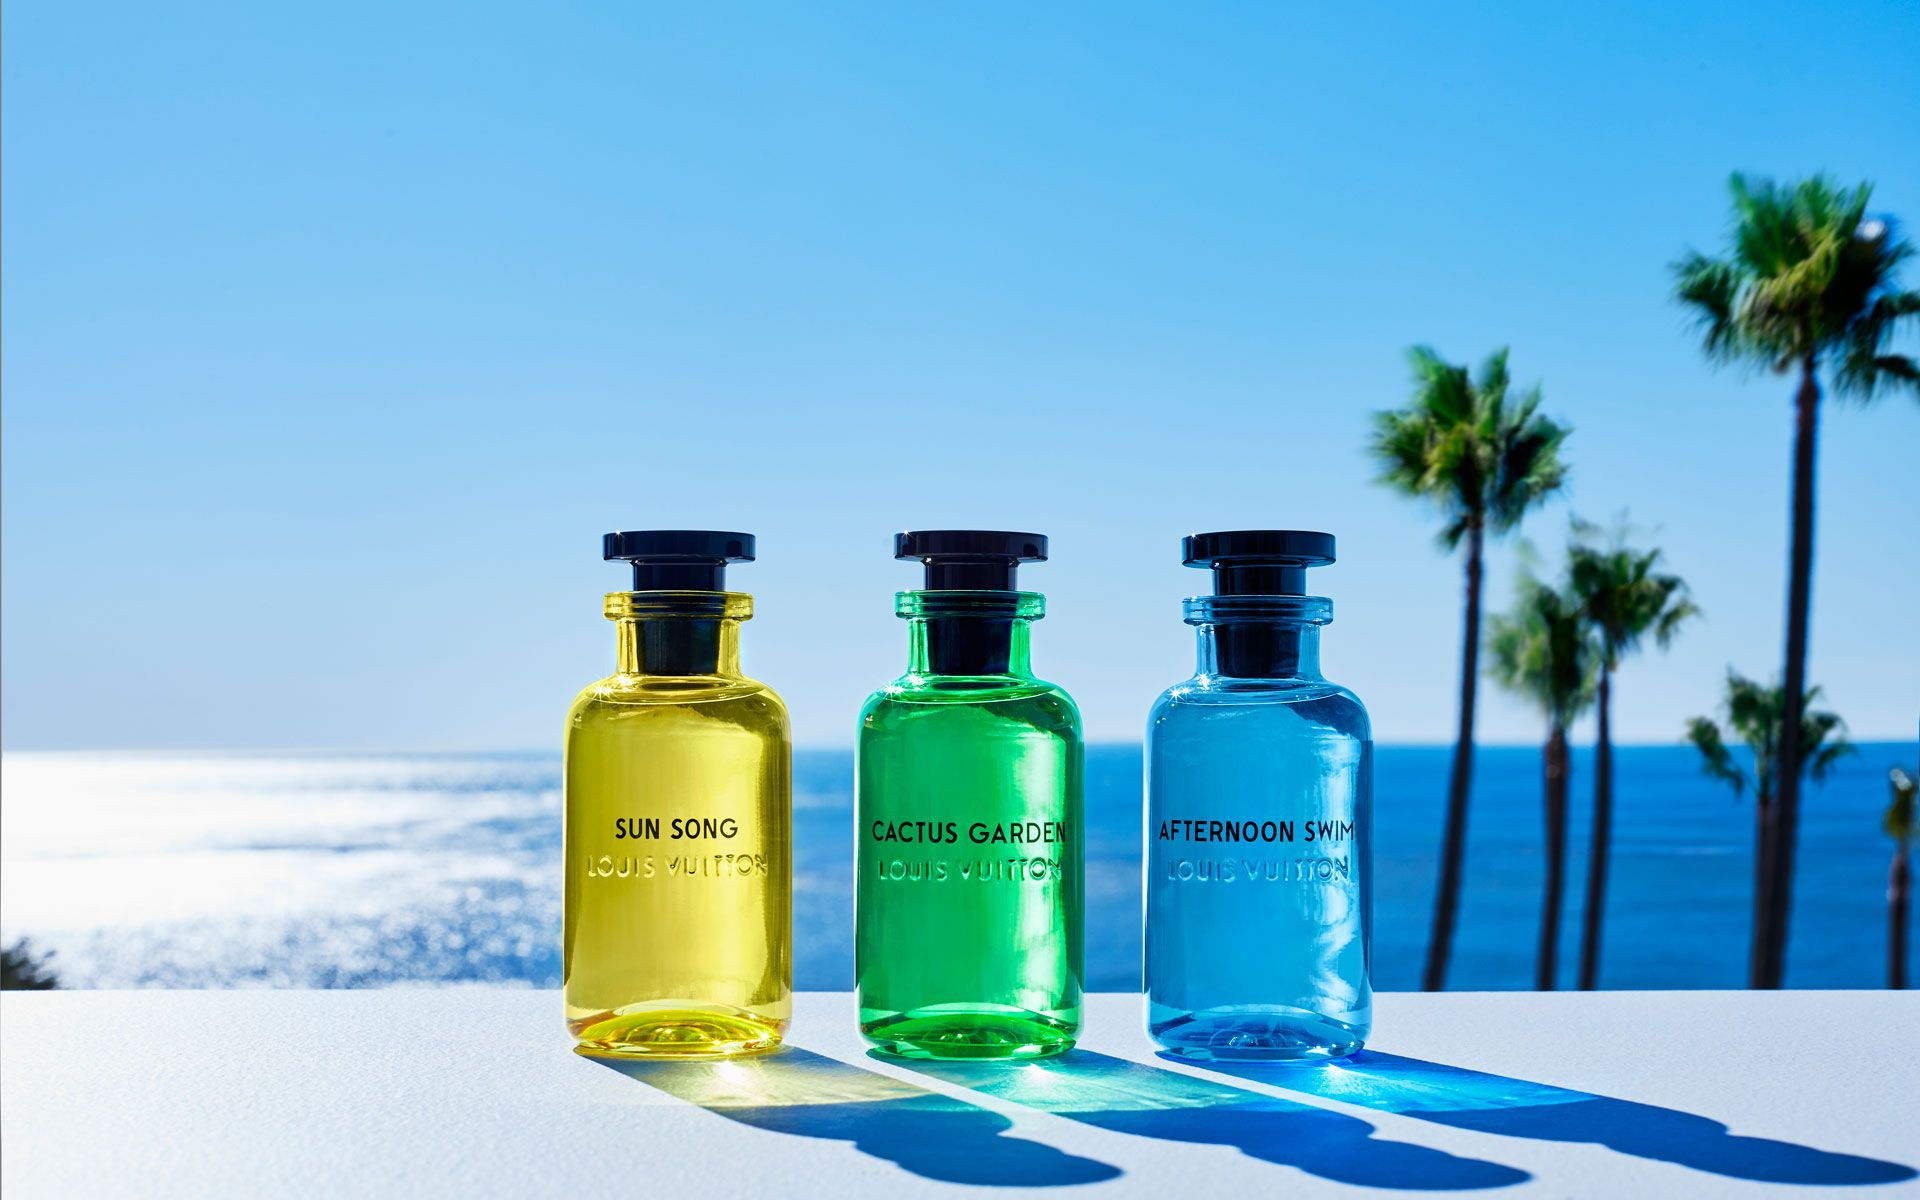 Capture the essence of summer with Les Colognes by Louis Vuitton. These unisex scents encapsulates ingredients like orange blossom, lemongrass and bergamot to give you feel-good summary vibes all year round.